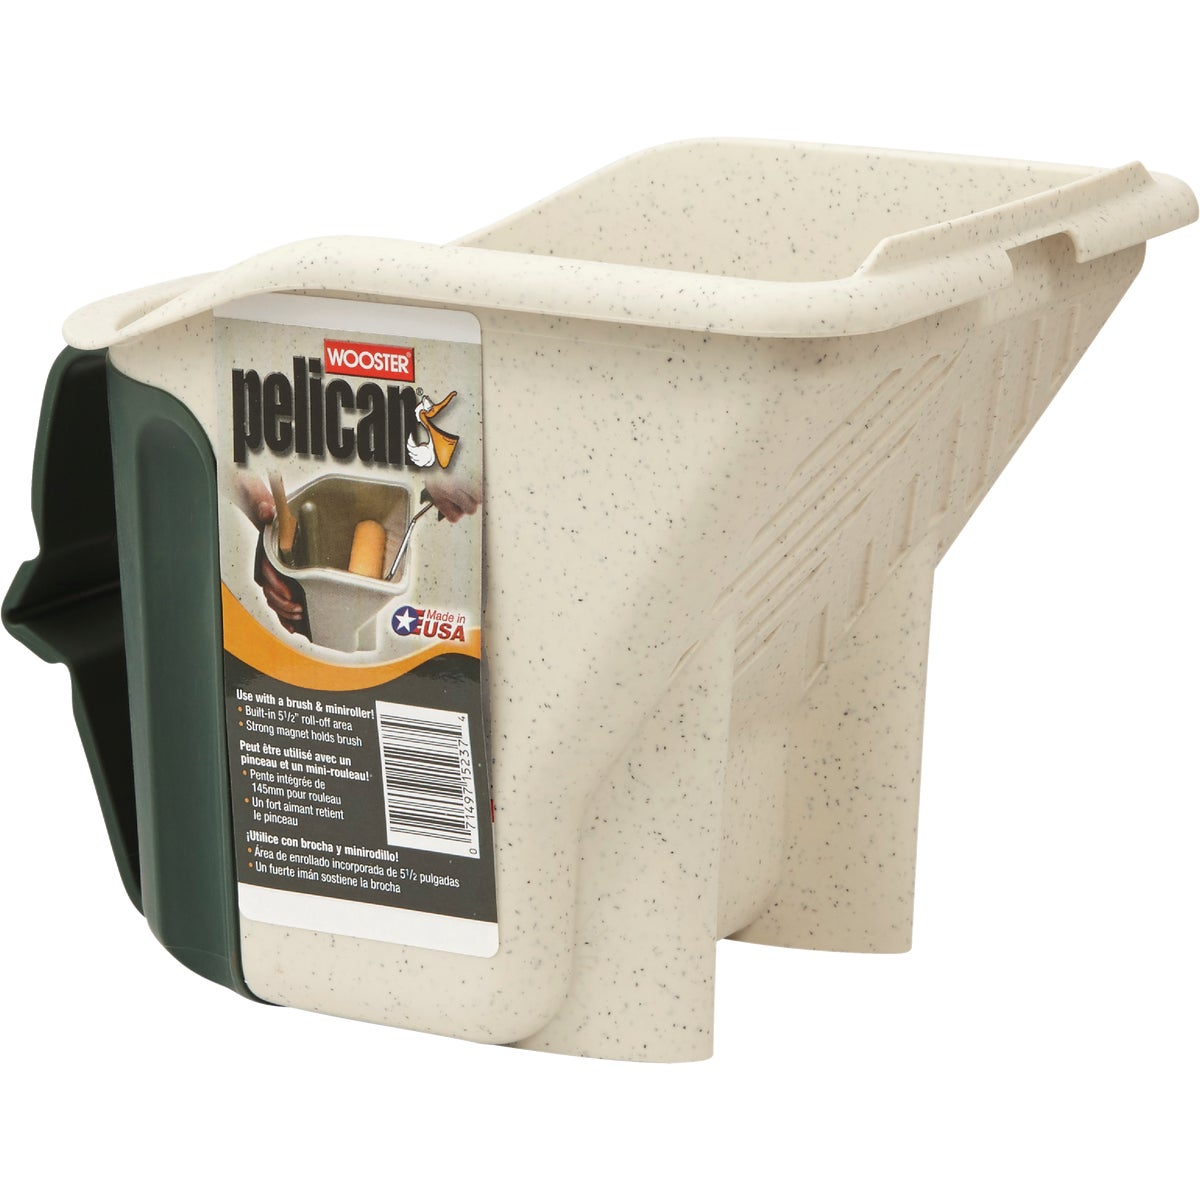 PELICAN PAINT PAIL - 8619 by Wooster Brush Co